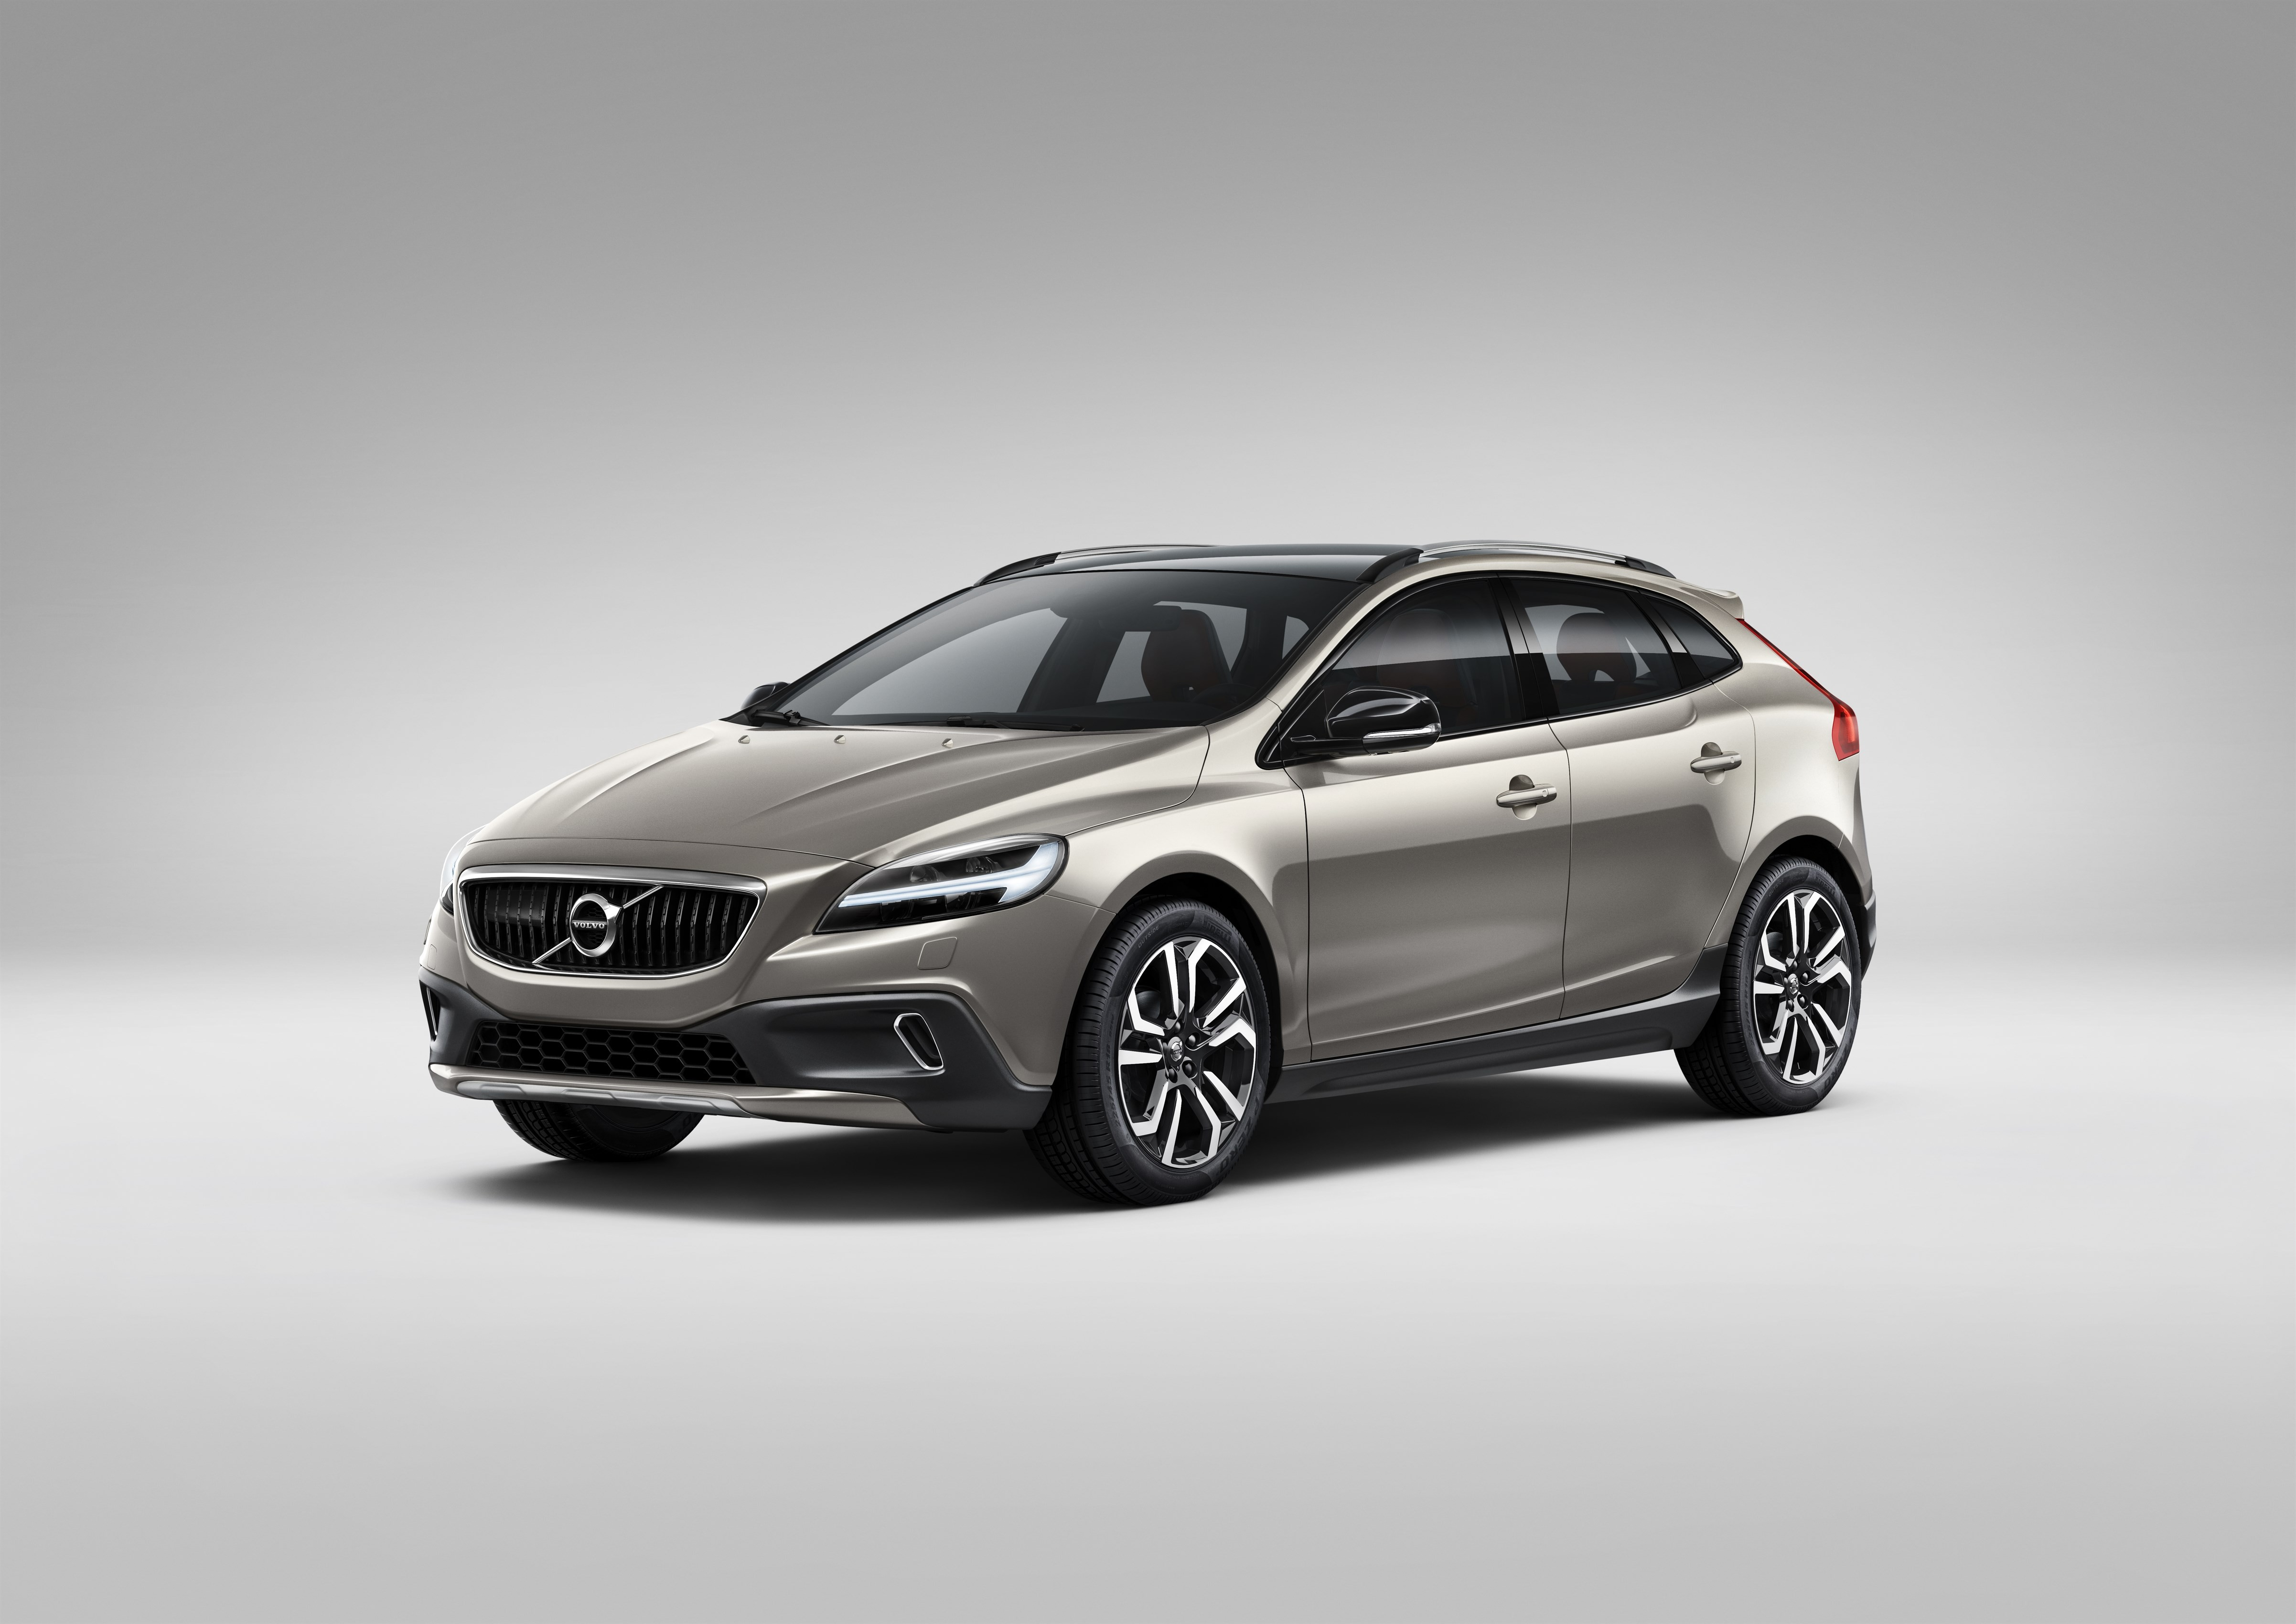 Volvo's CMA Compact Car Plans: New V40 in 2016 and XC40 in ...